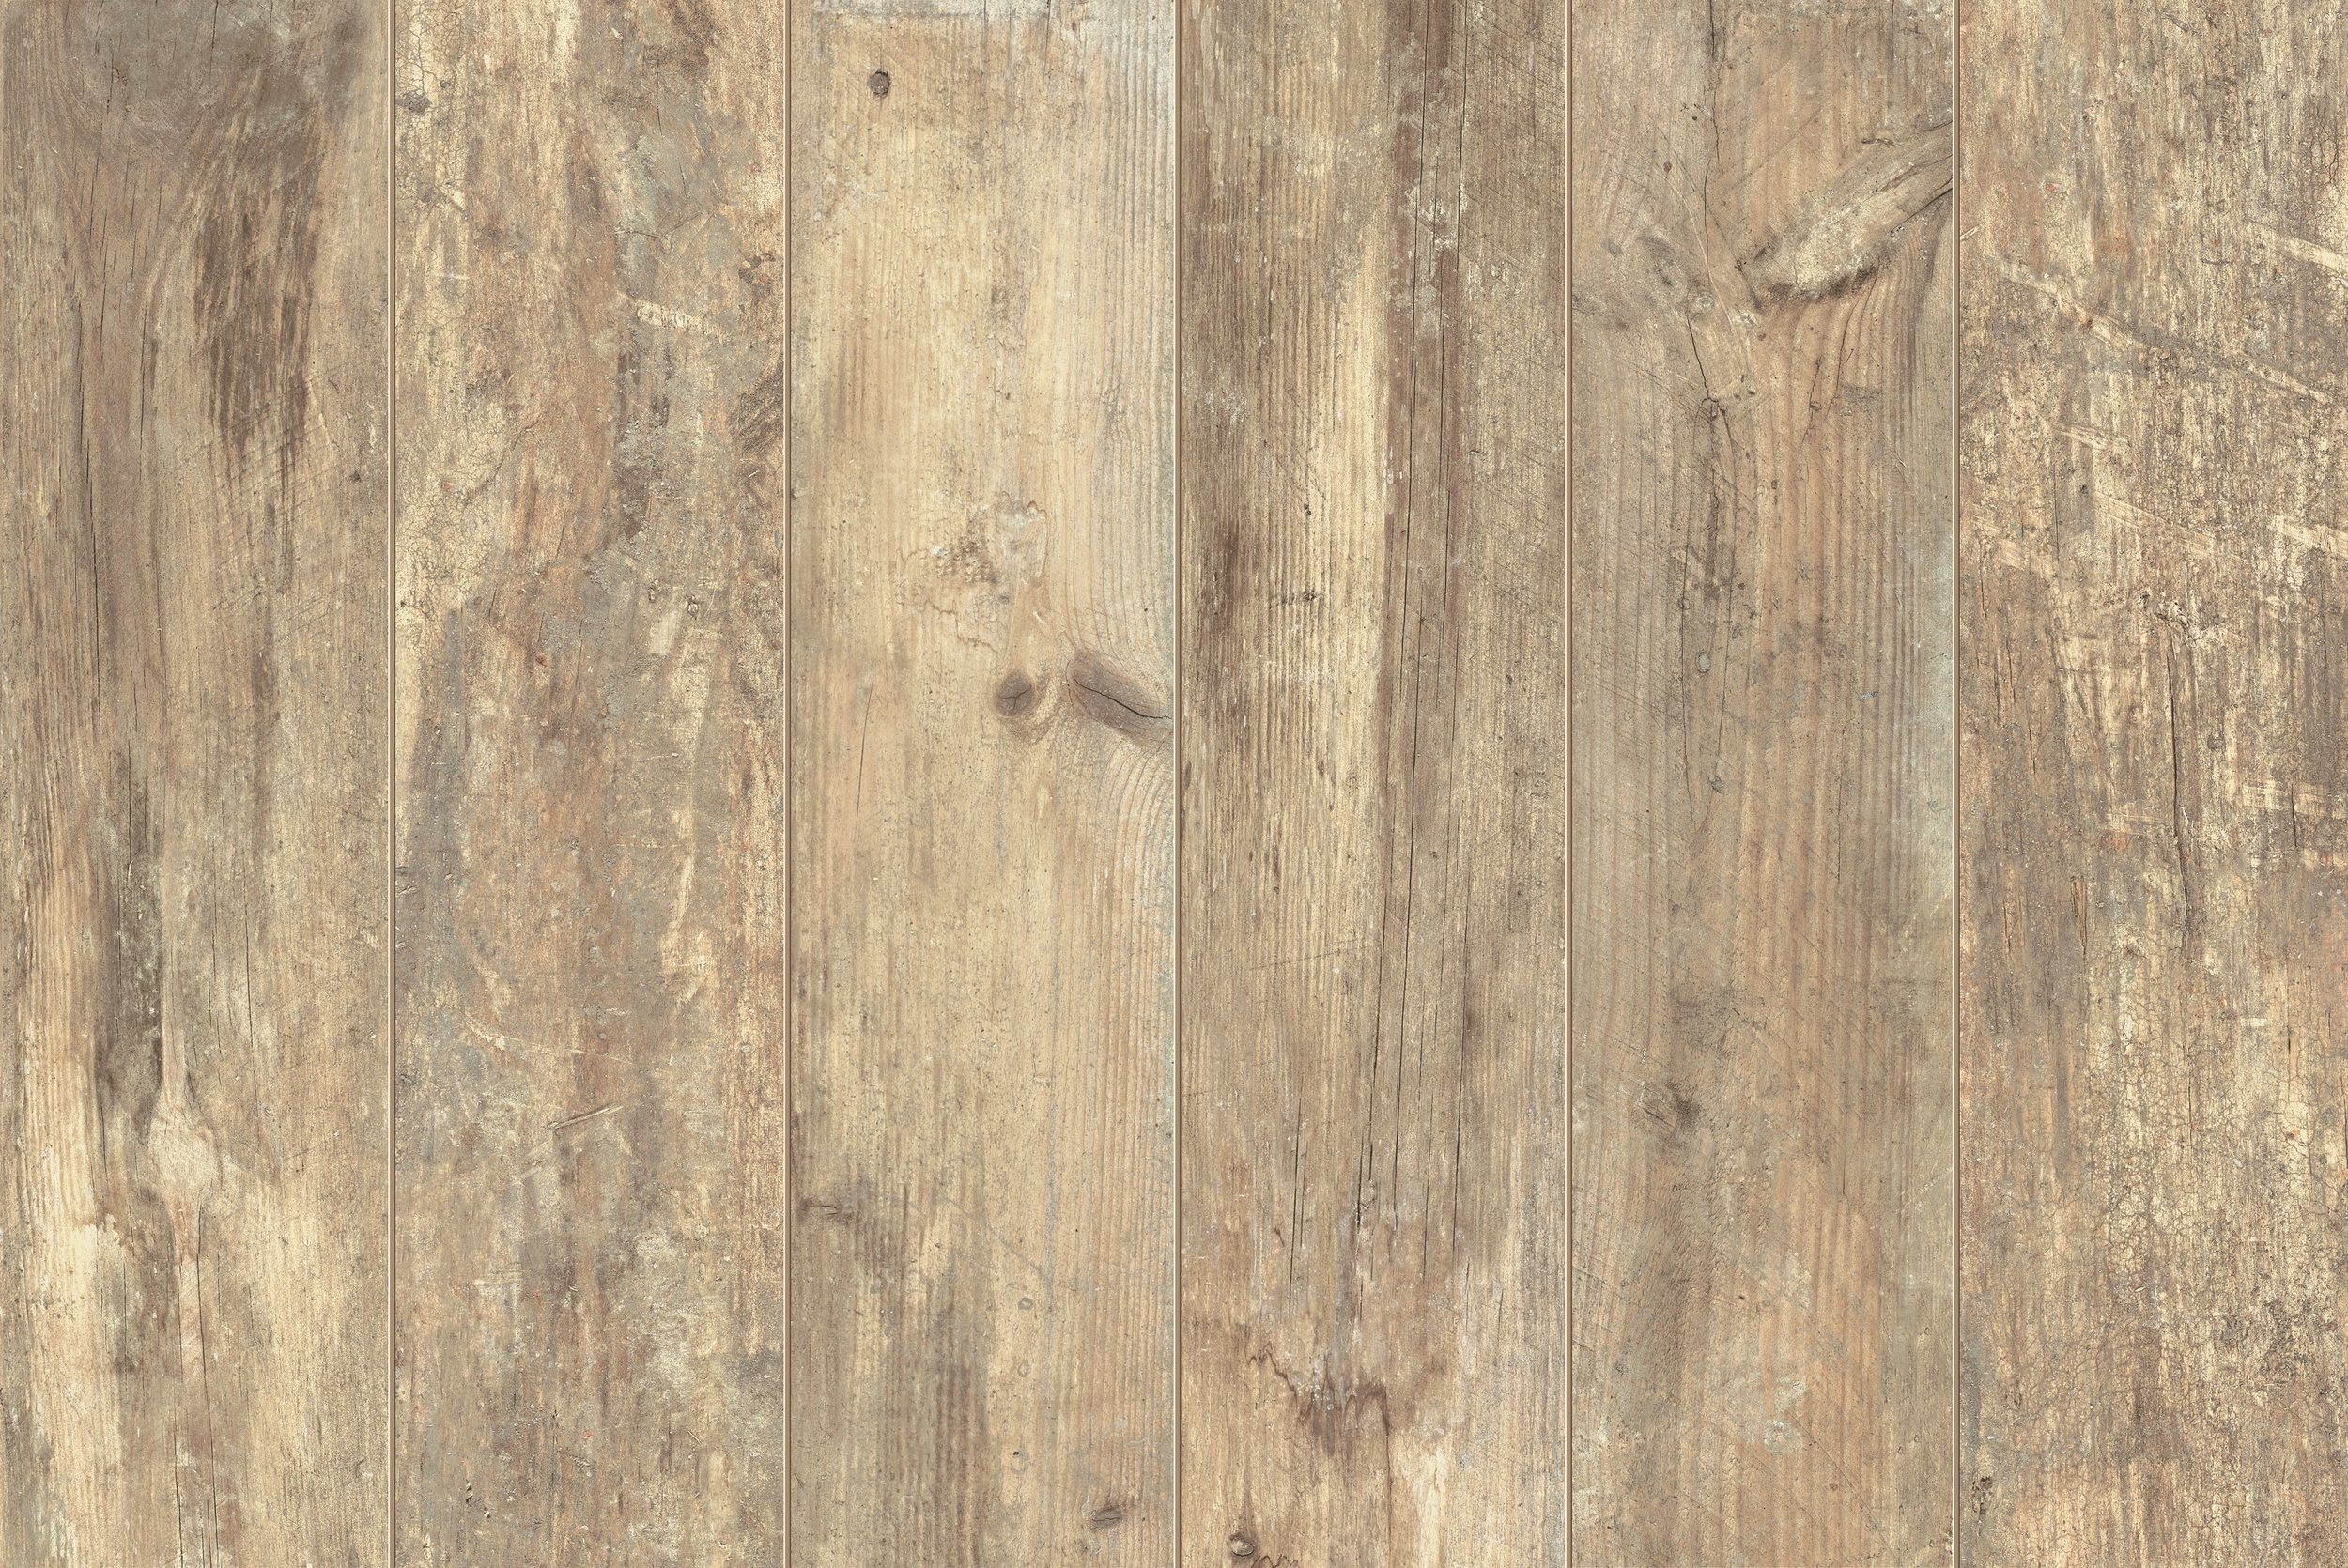 Ecowood Rovere